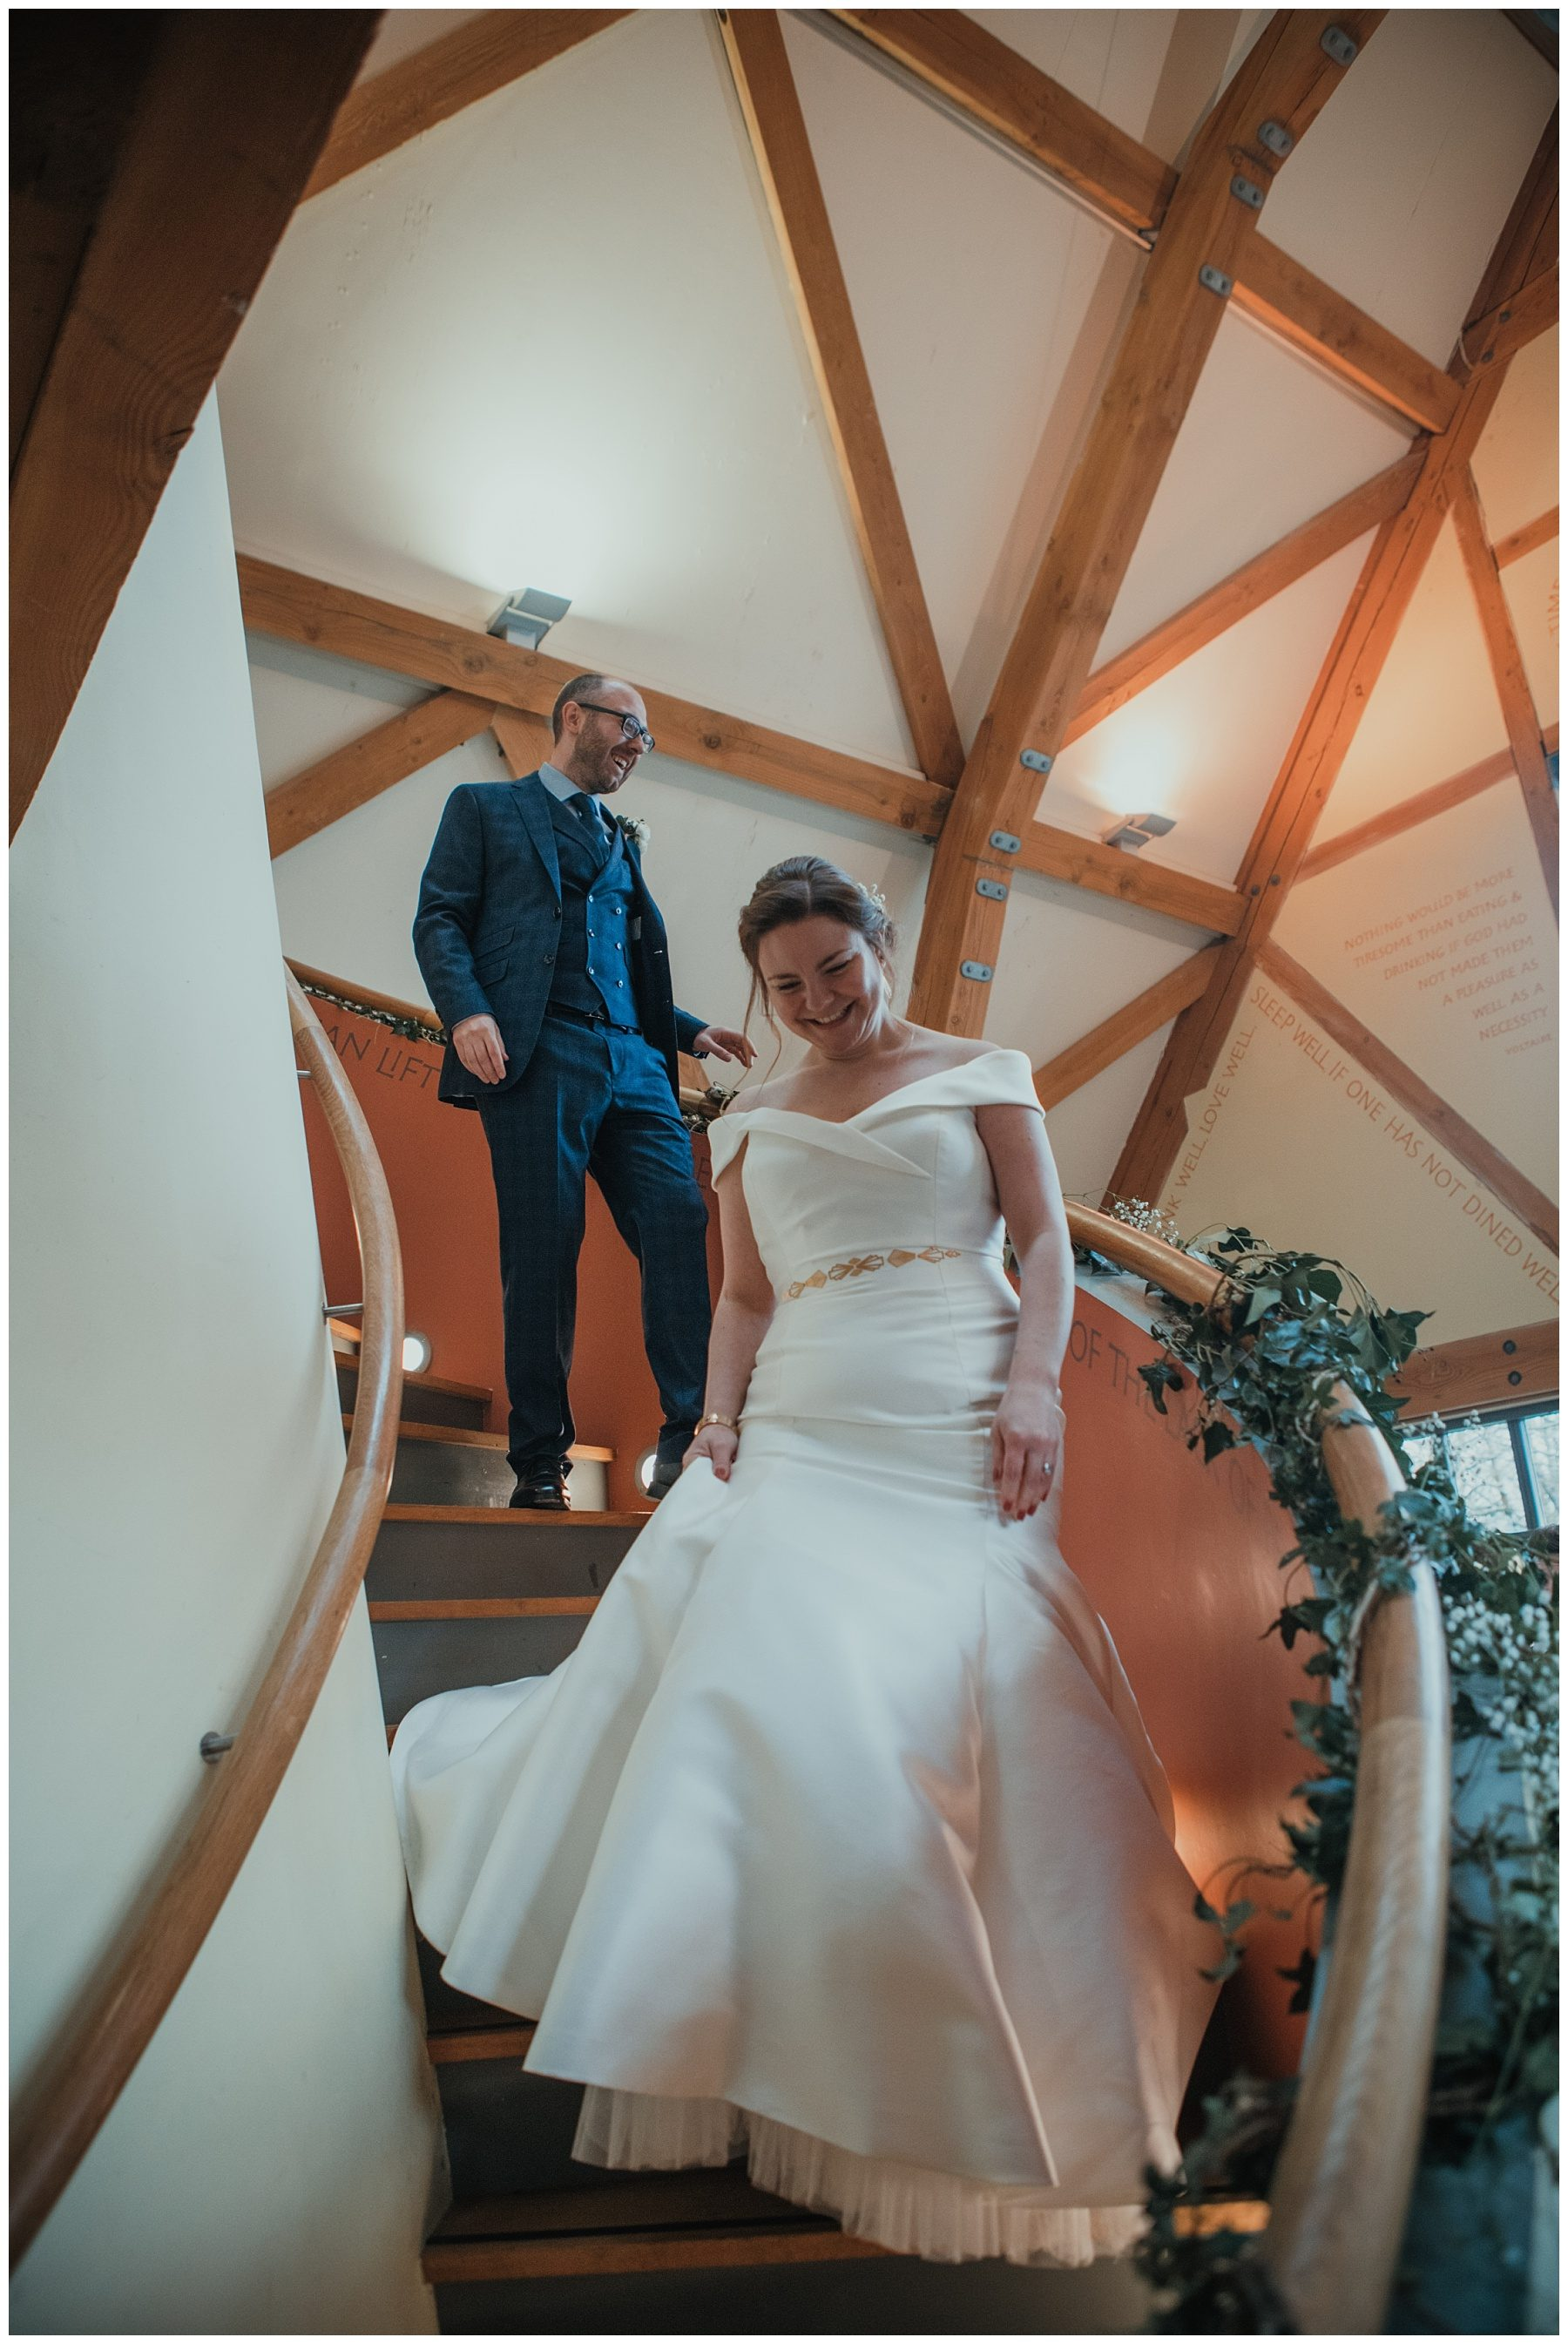 Bride walking down spiral staircase